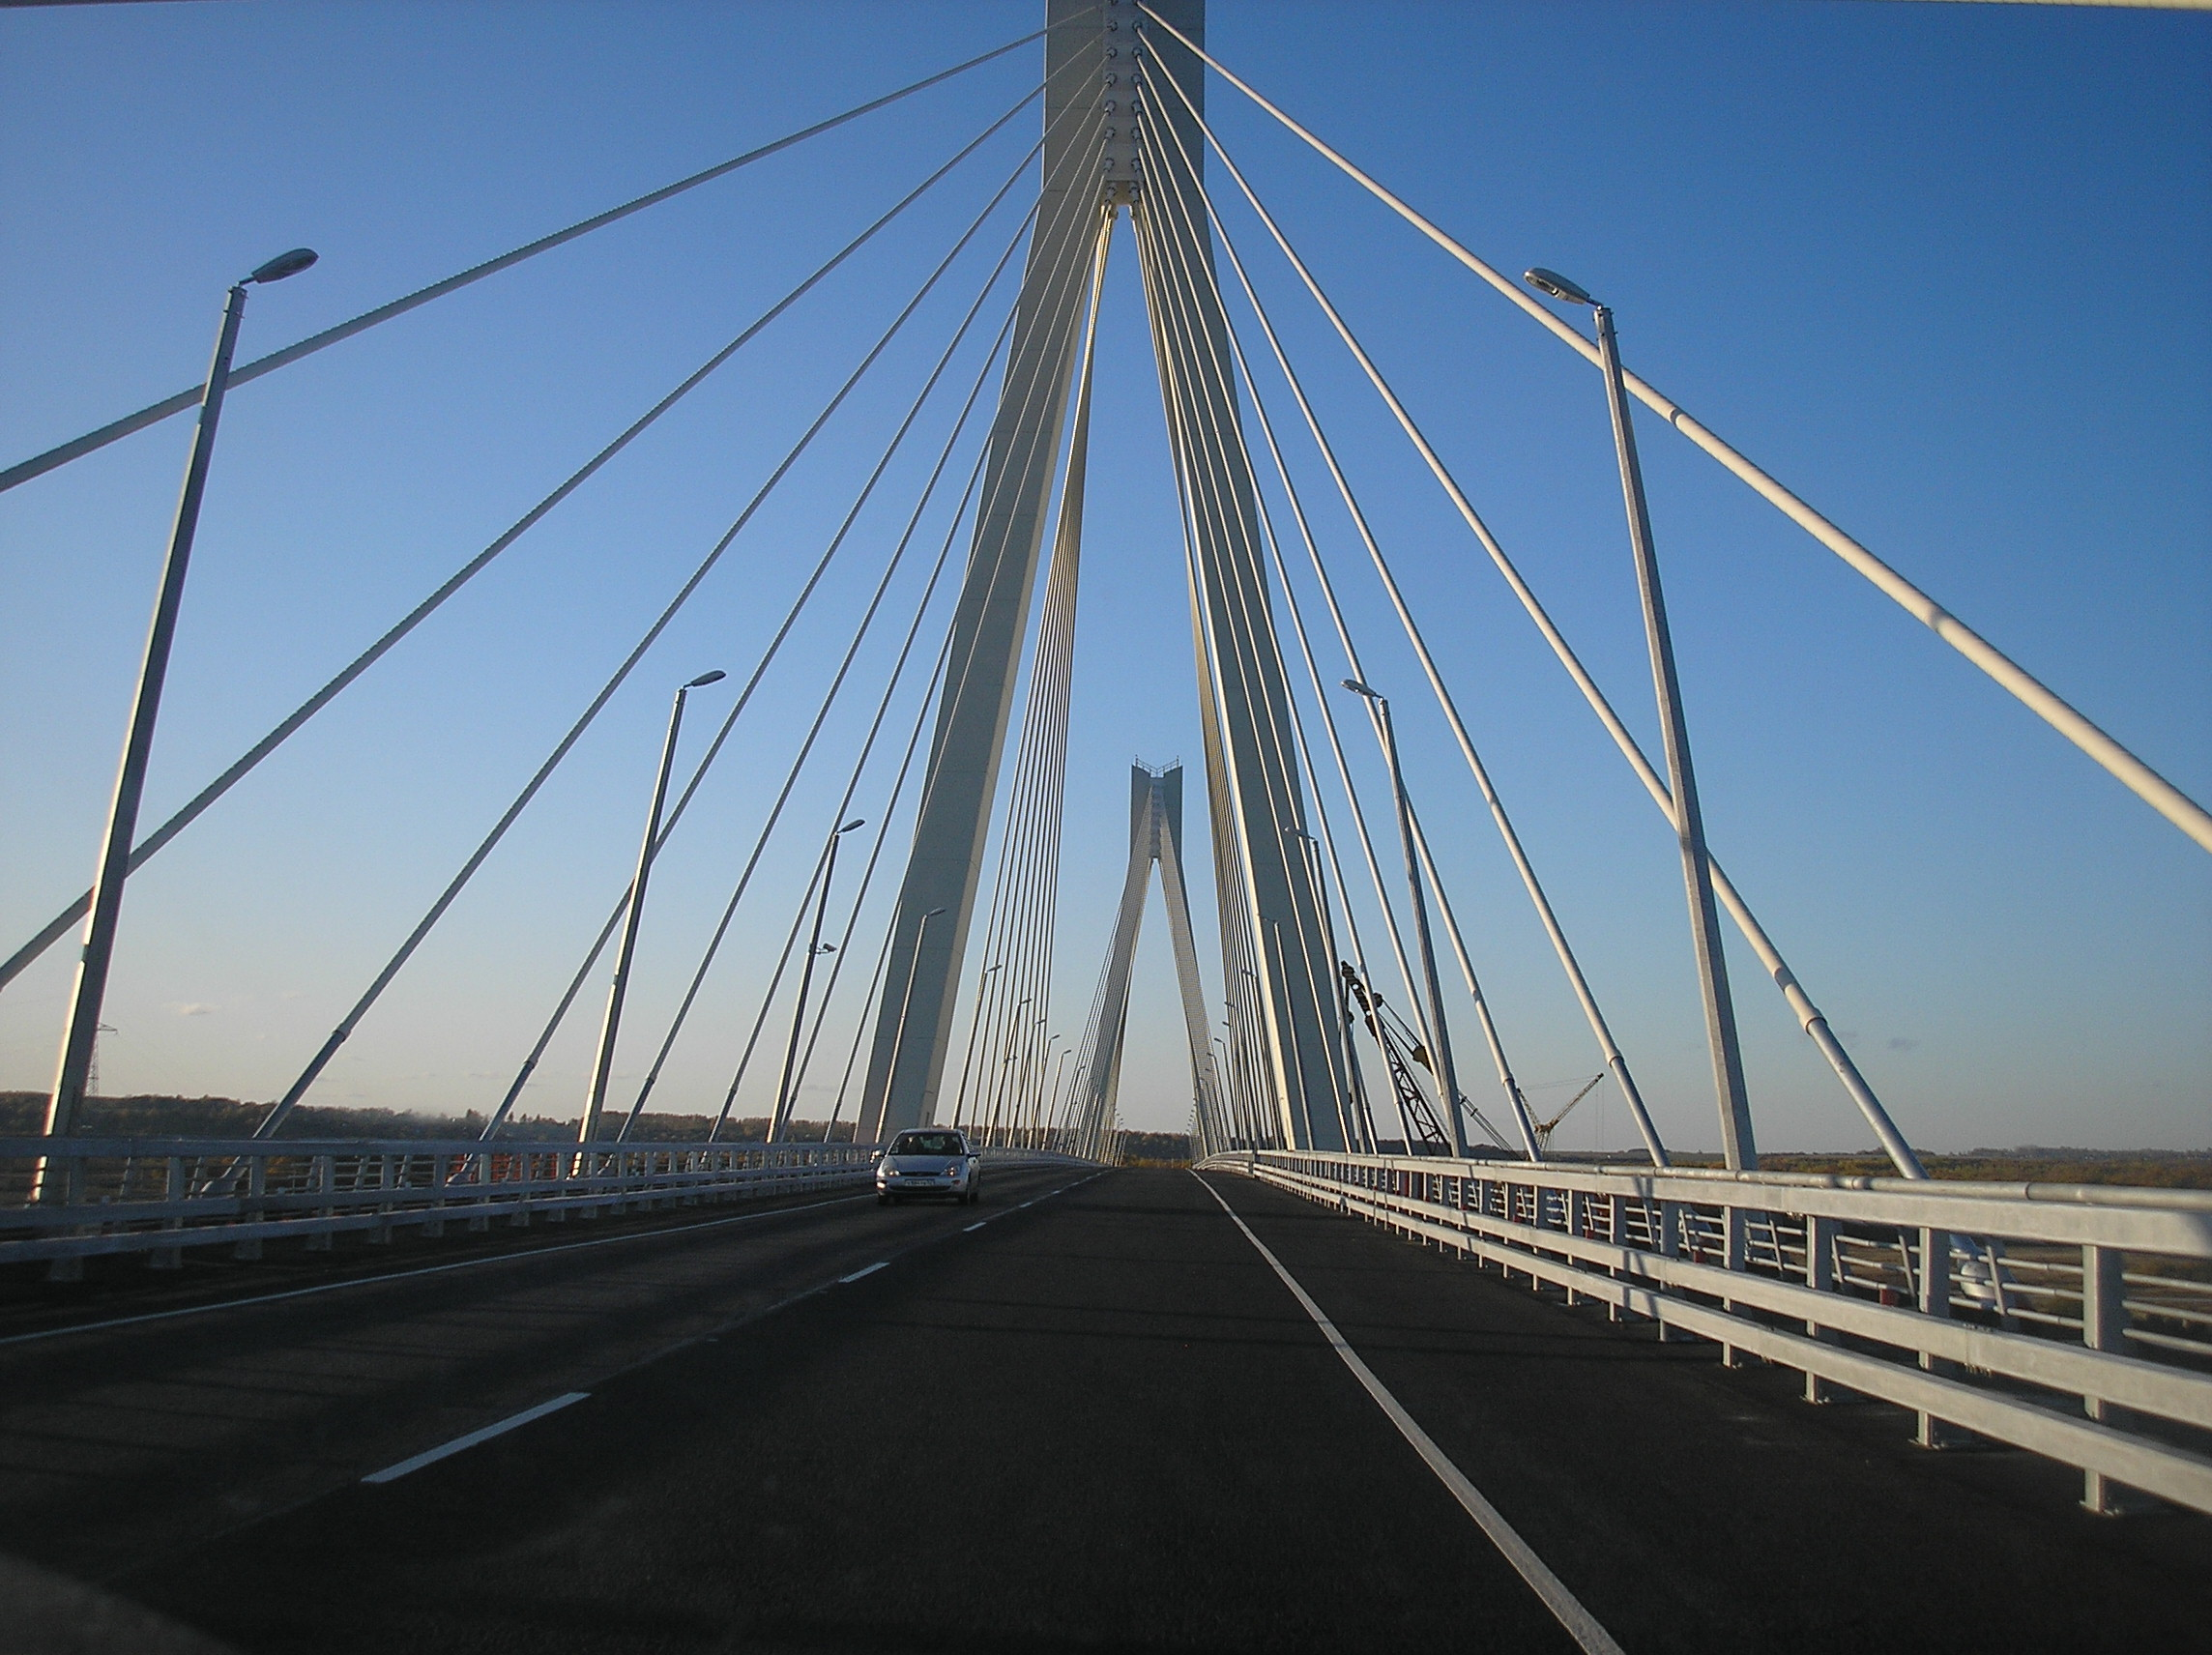 https://upload.wikimedia.org/wikipedia/commons/6/60/Murom_bridge_2009.JPG